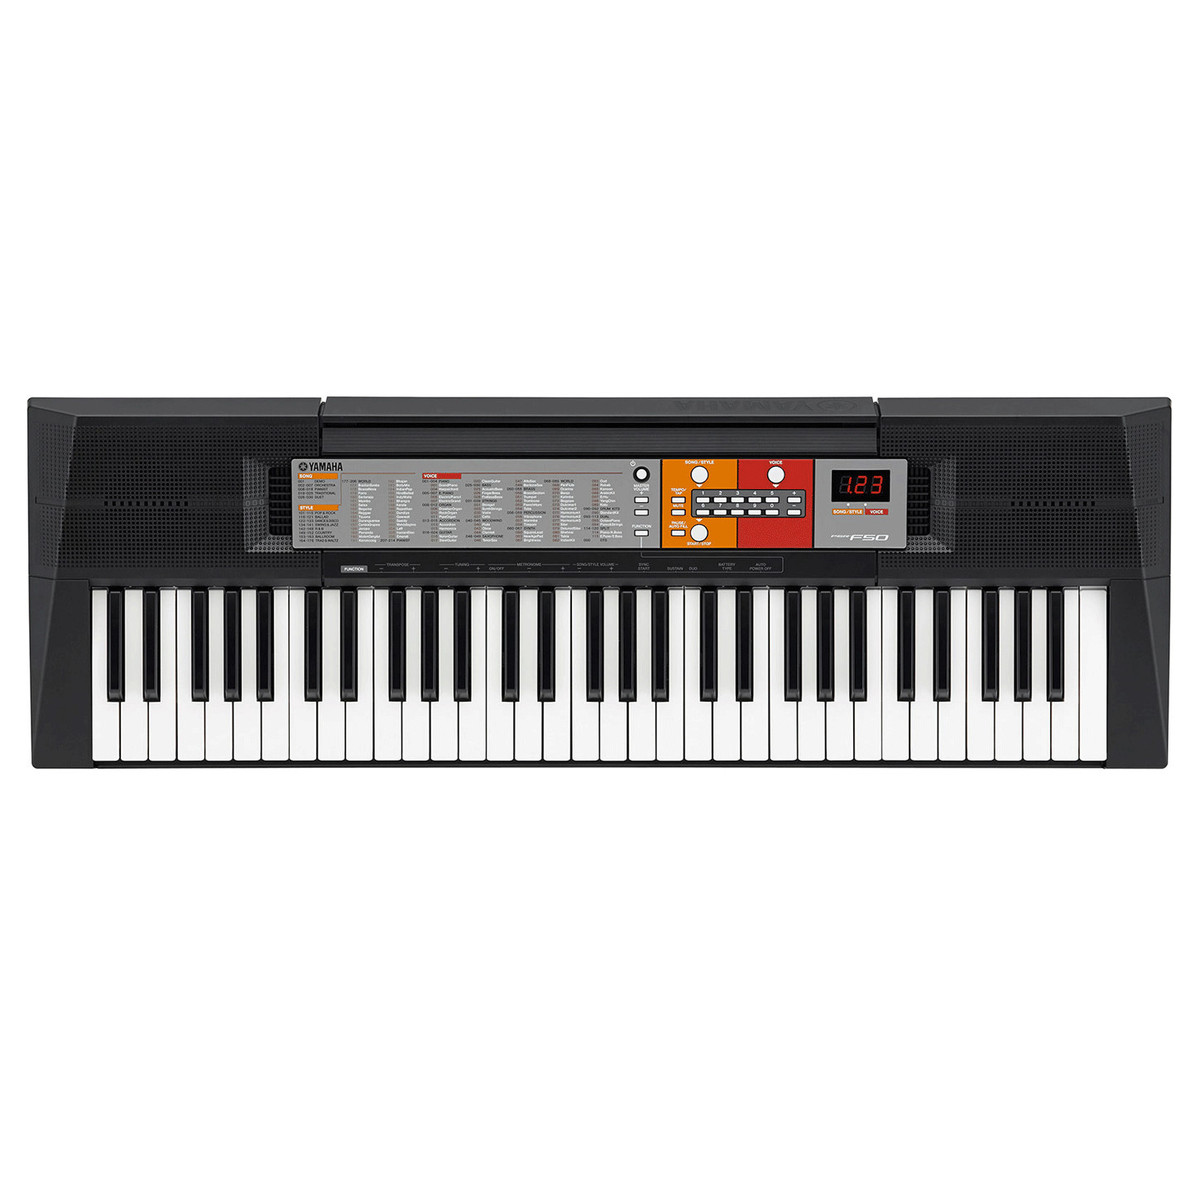 Yamaha psr f50 portable keyboard nearly new at for Www yamaha keyboards